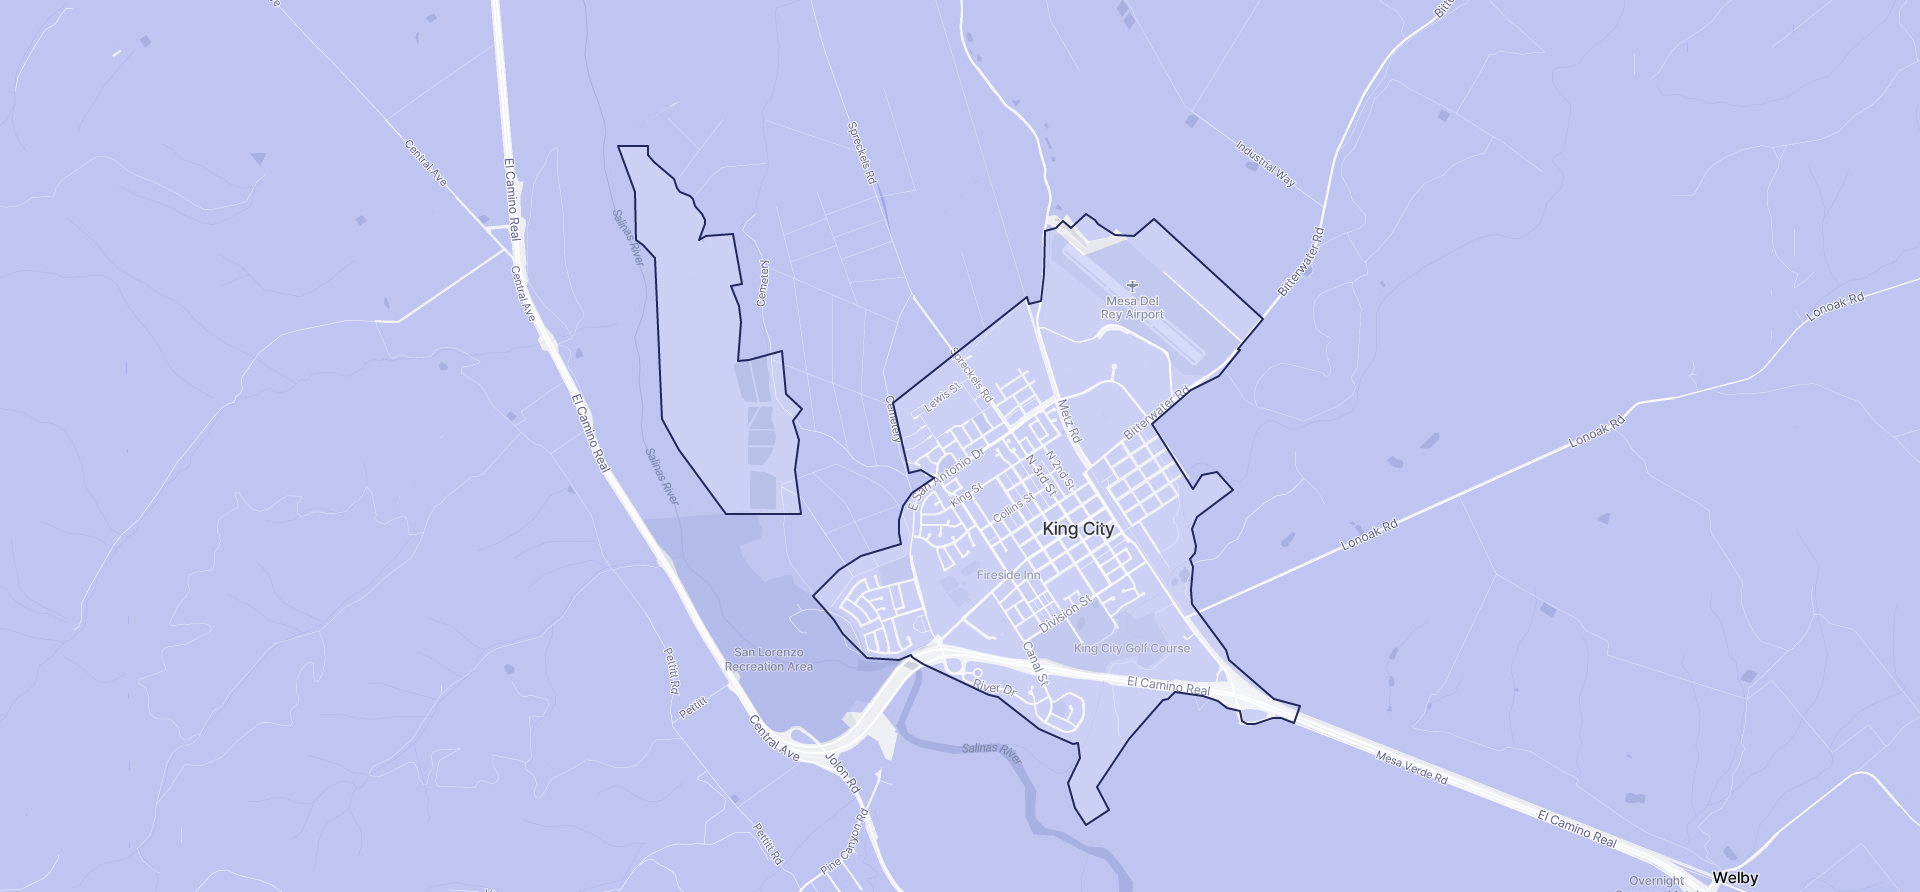 Image of King City boundaries on a map.